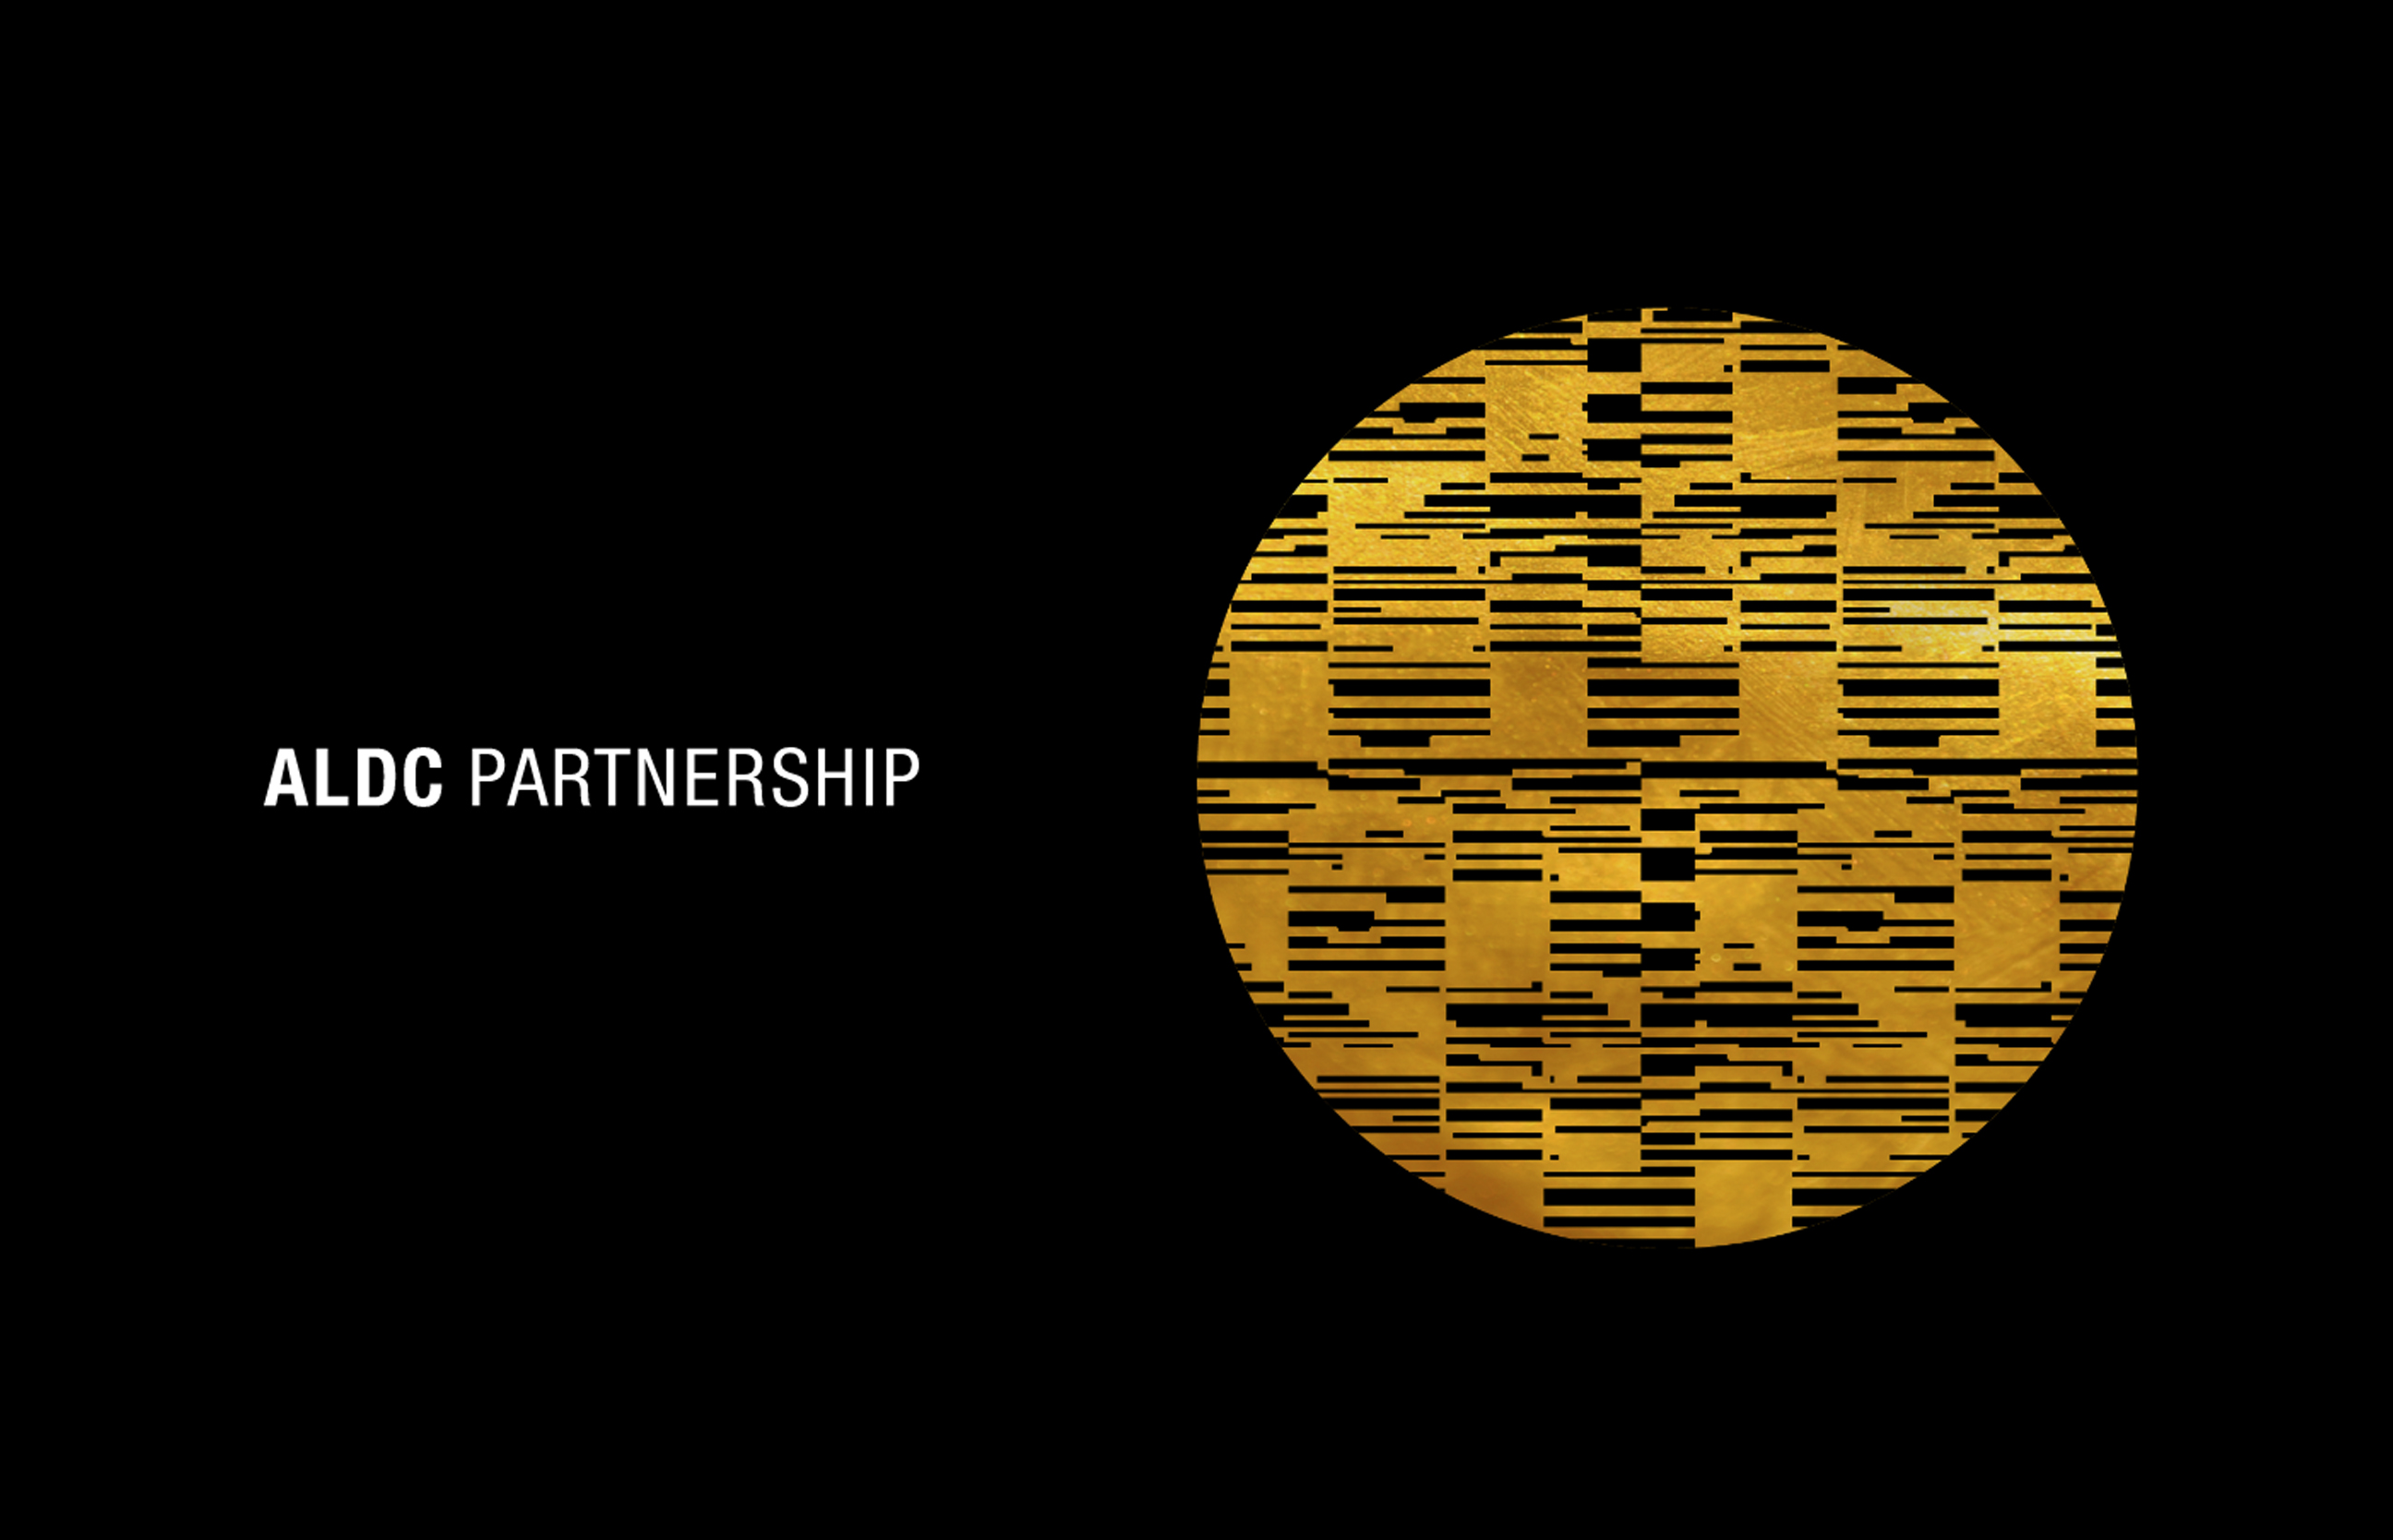 ALDC Partnership